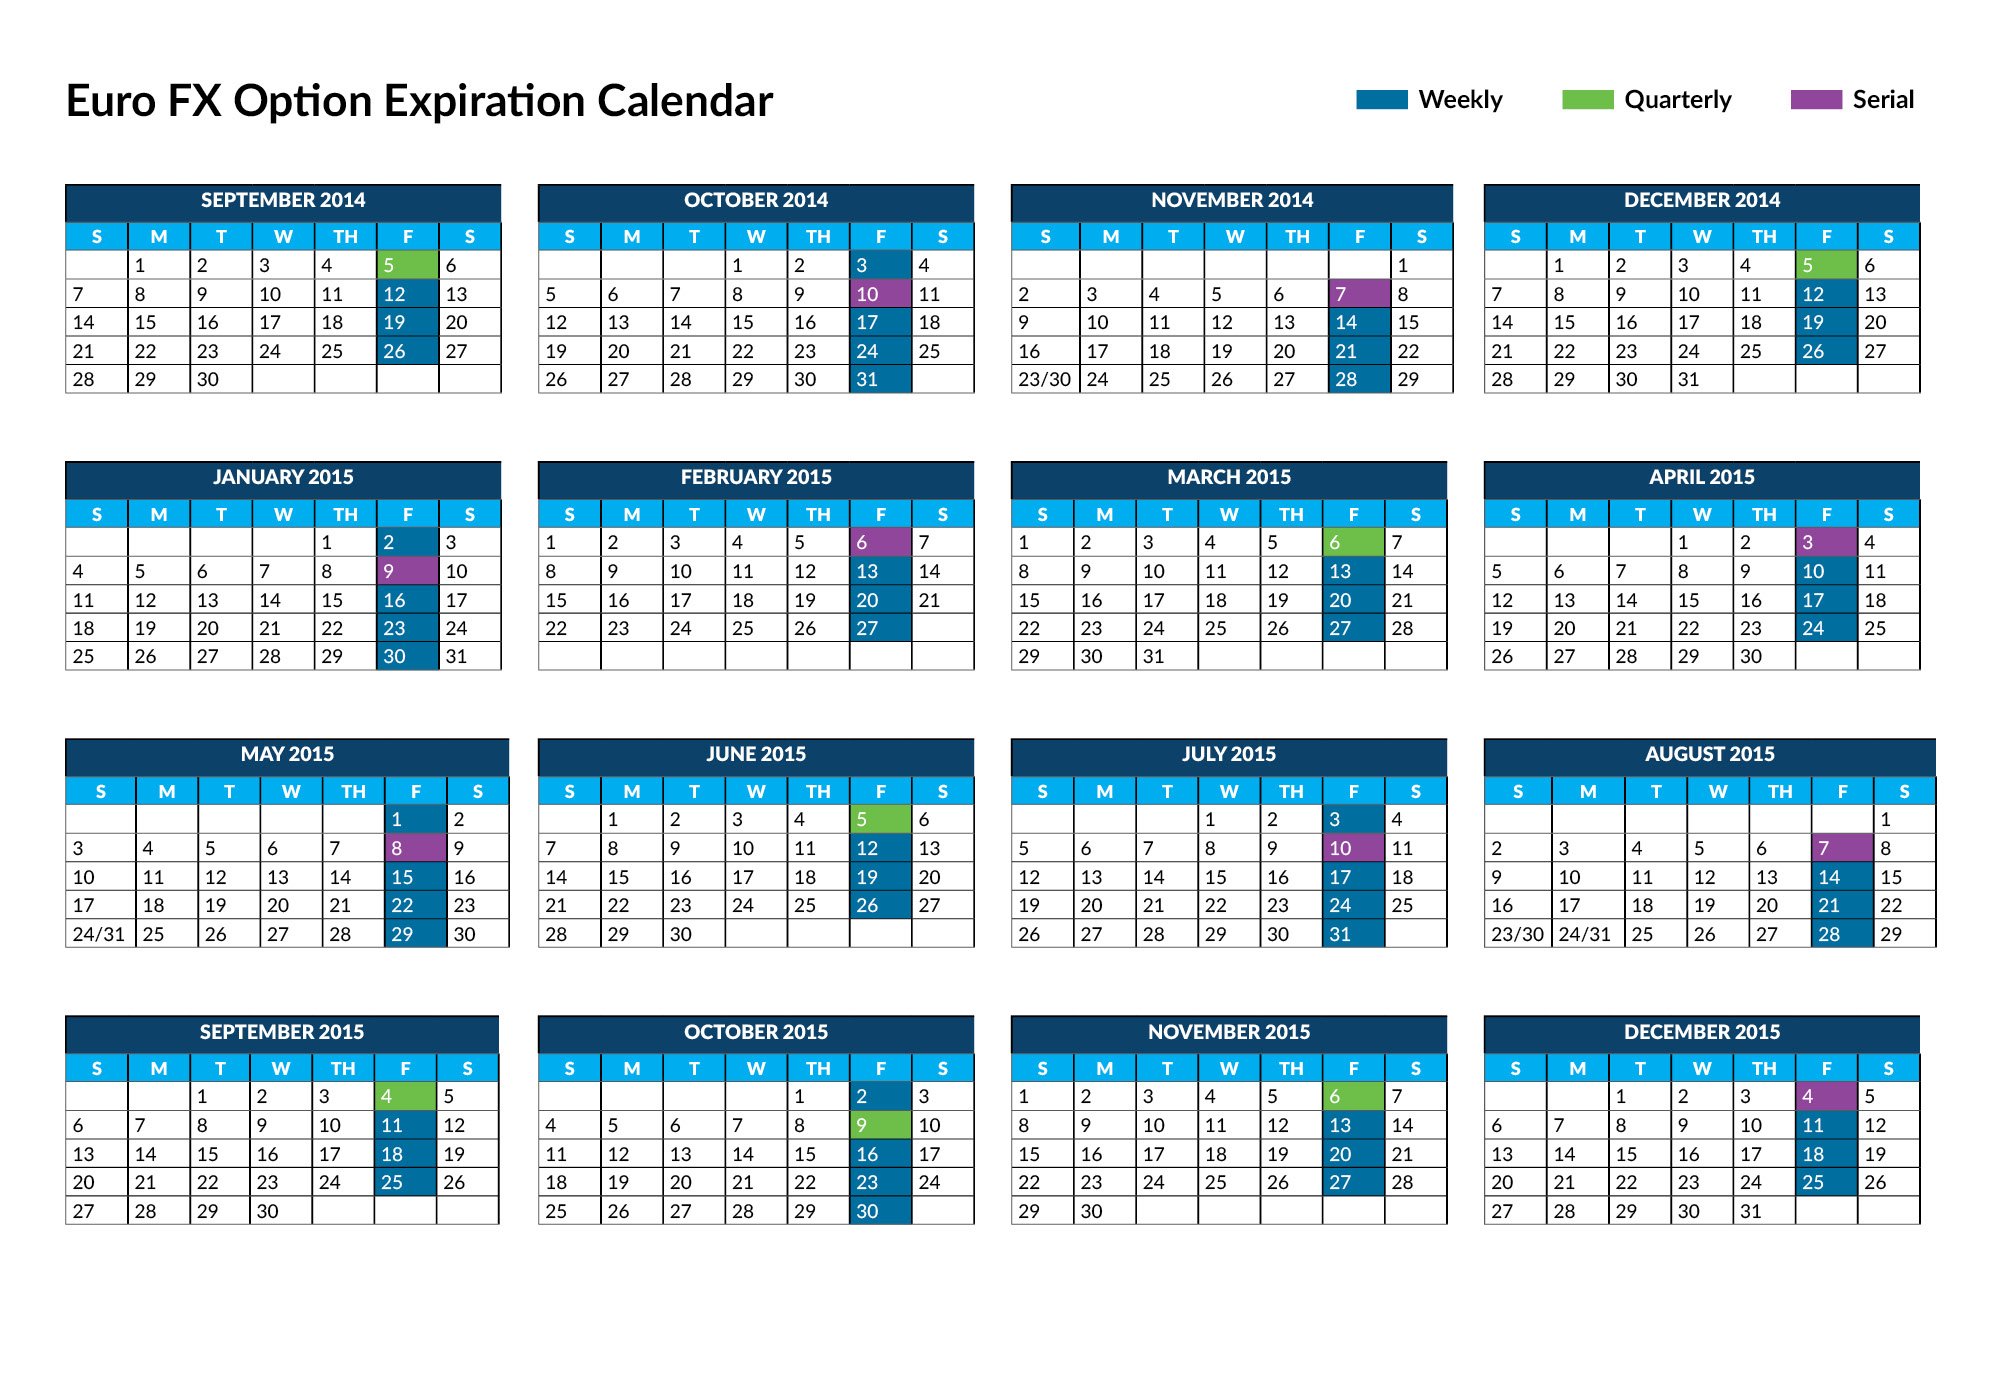 Options trading expiration calendar